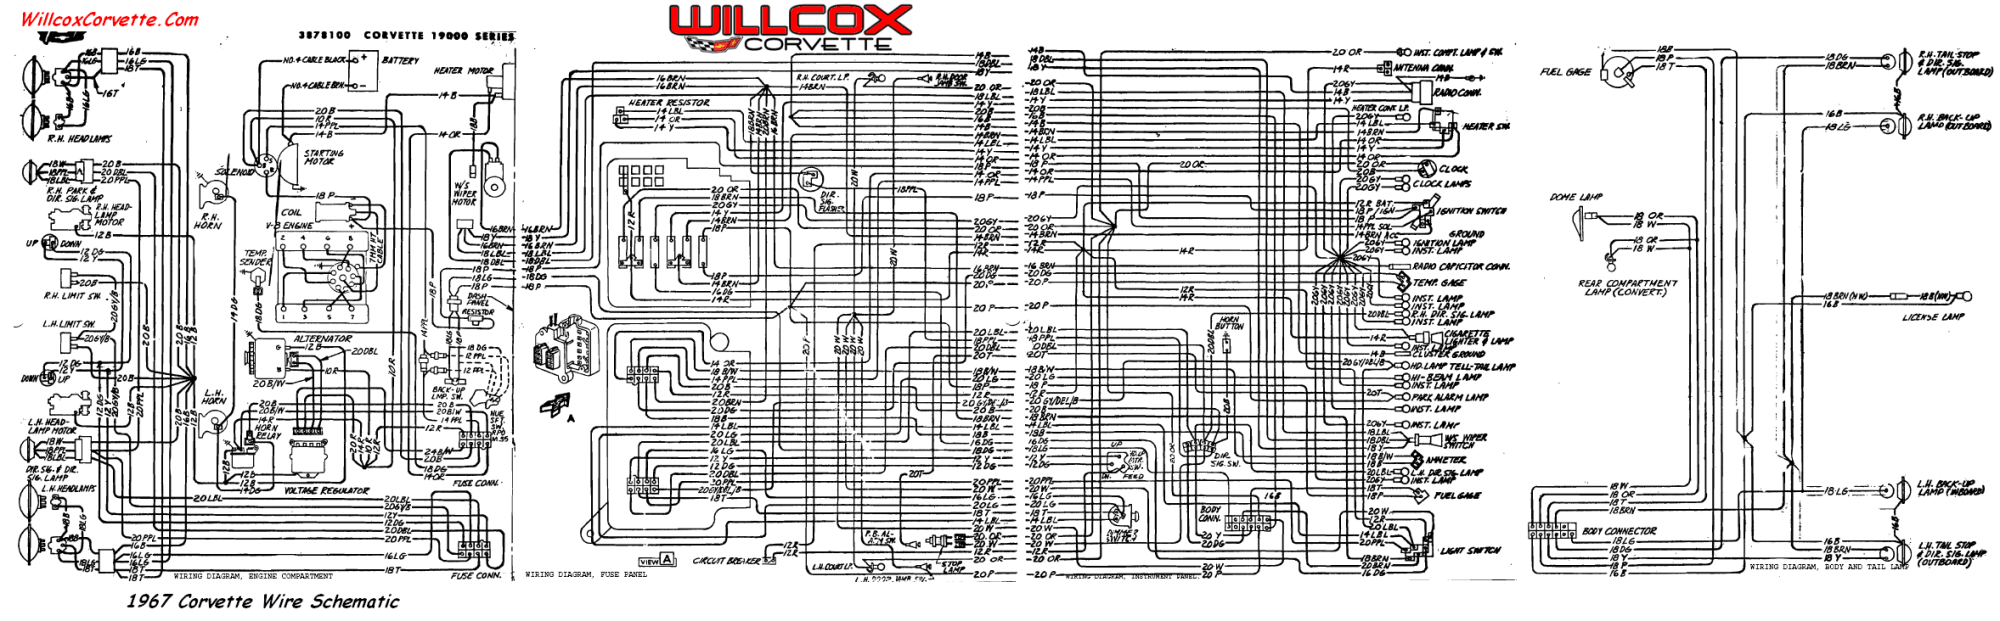 hight resolution of 1978 corvette wiring diagram wiring diagram datasource1978 corvette wiring diagram wiring diagrams konsult 1978 corvette starter